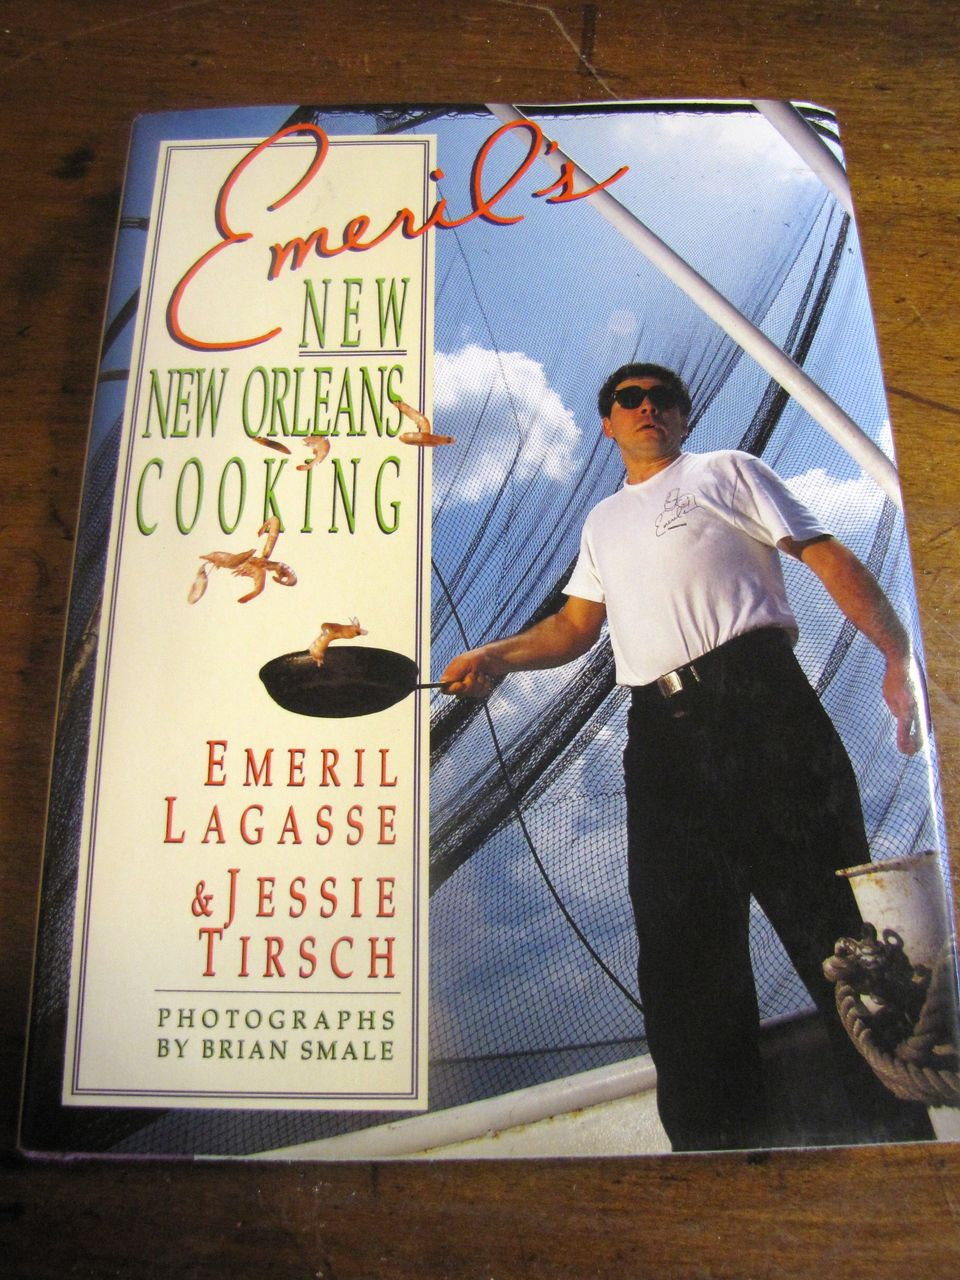 H, S.O. - Emerils' New Orleans Cooking, in Excellent Condition‏